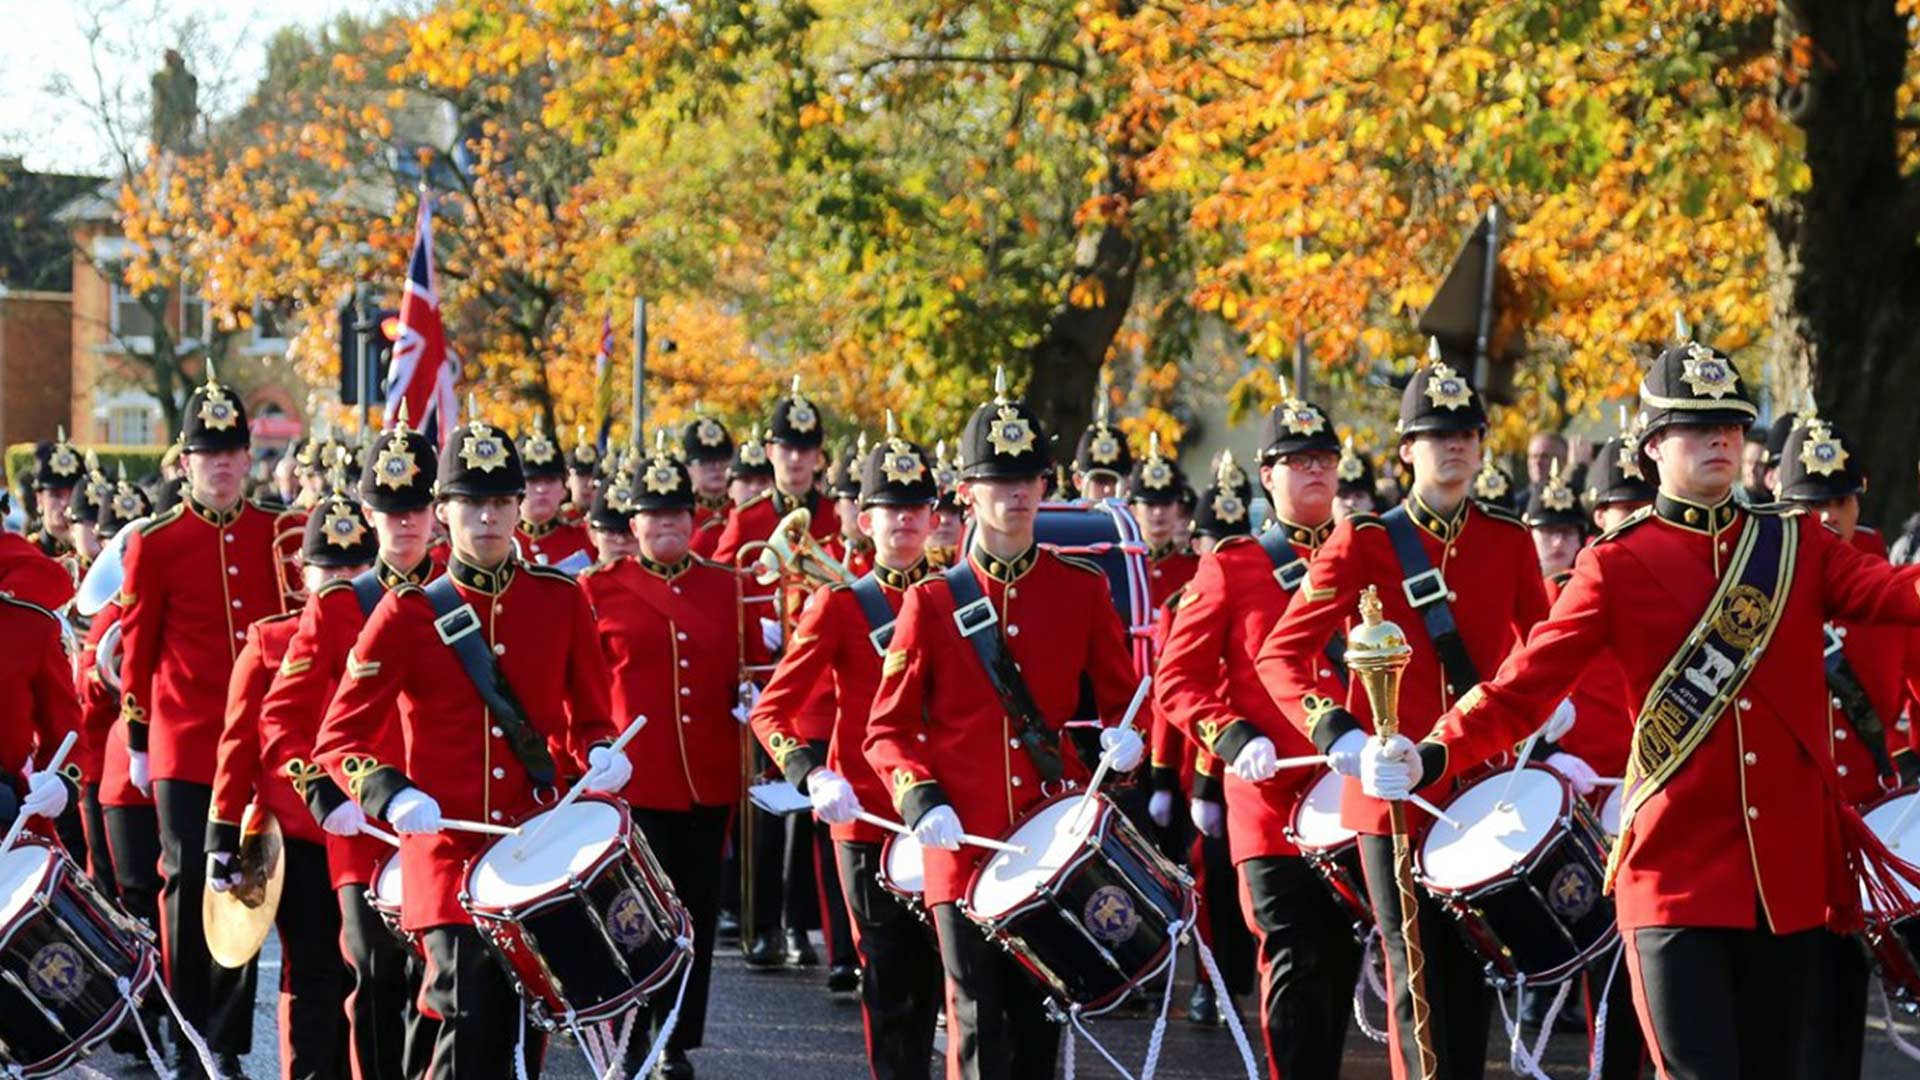 Join the Brentwood Imperial Youth Band